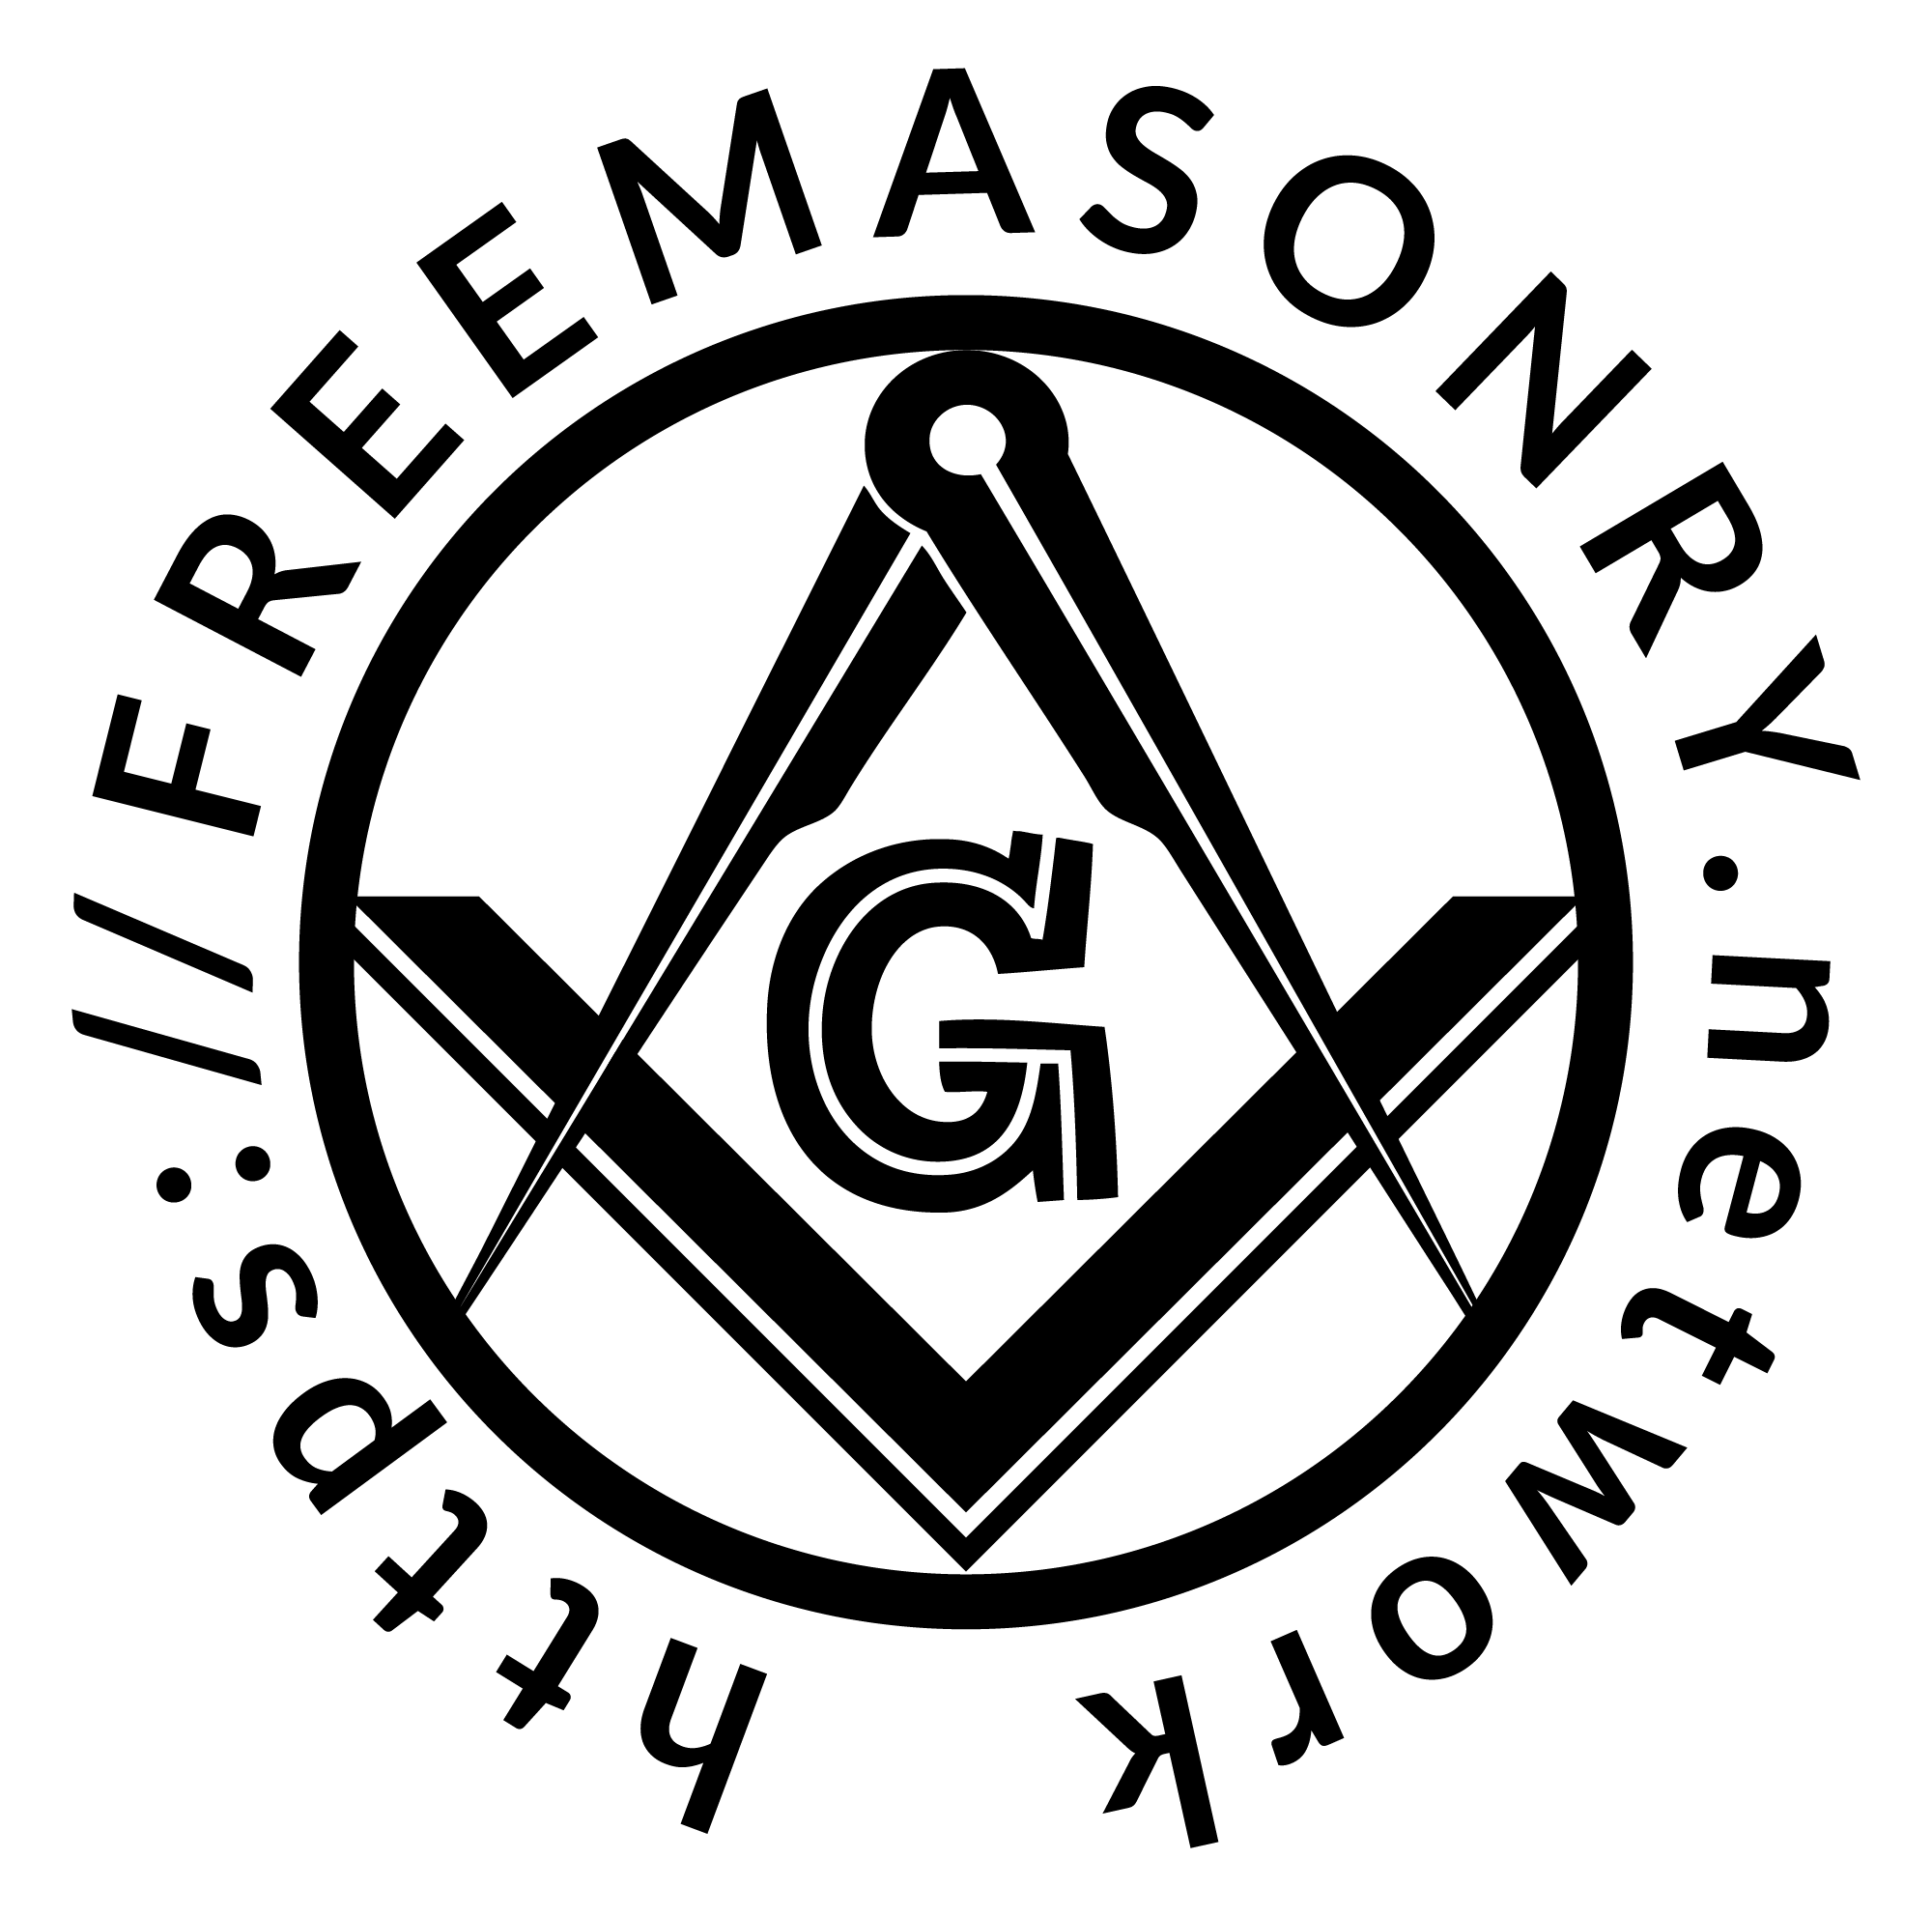 FREEMASONRY IN AUSTRALIA BY GEOGRAPHICAL AREA